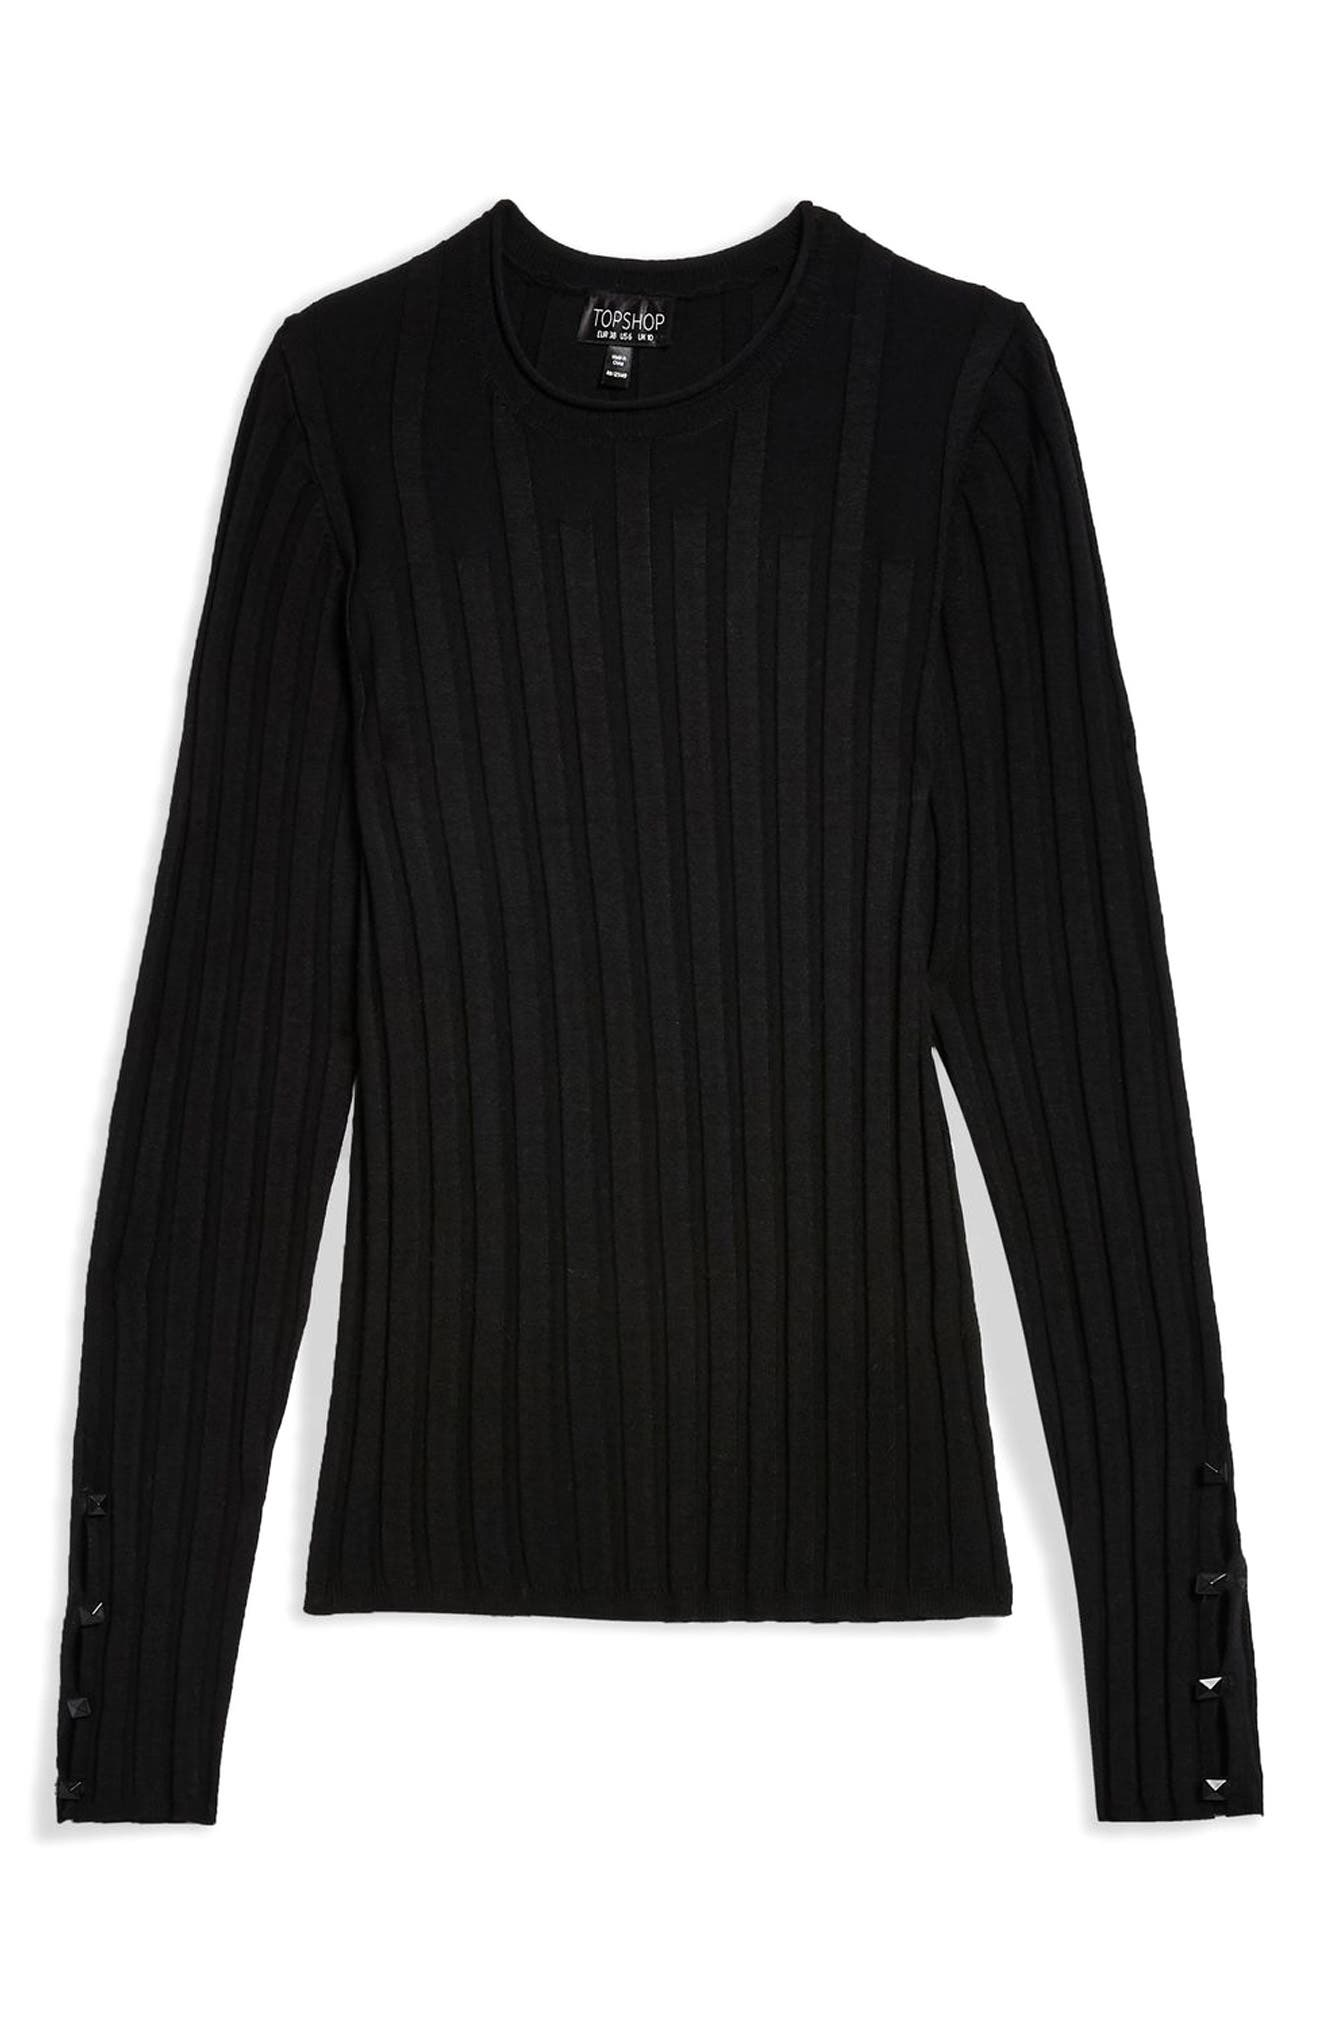 TOPSHOP, Ribbed Sweater, Alternate thumbnail 3, color, BLACK